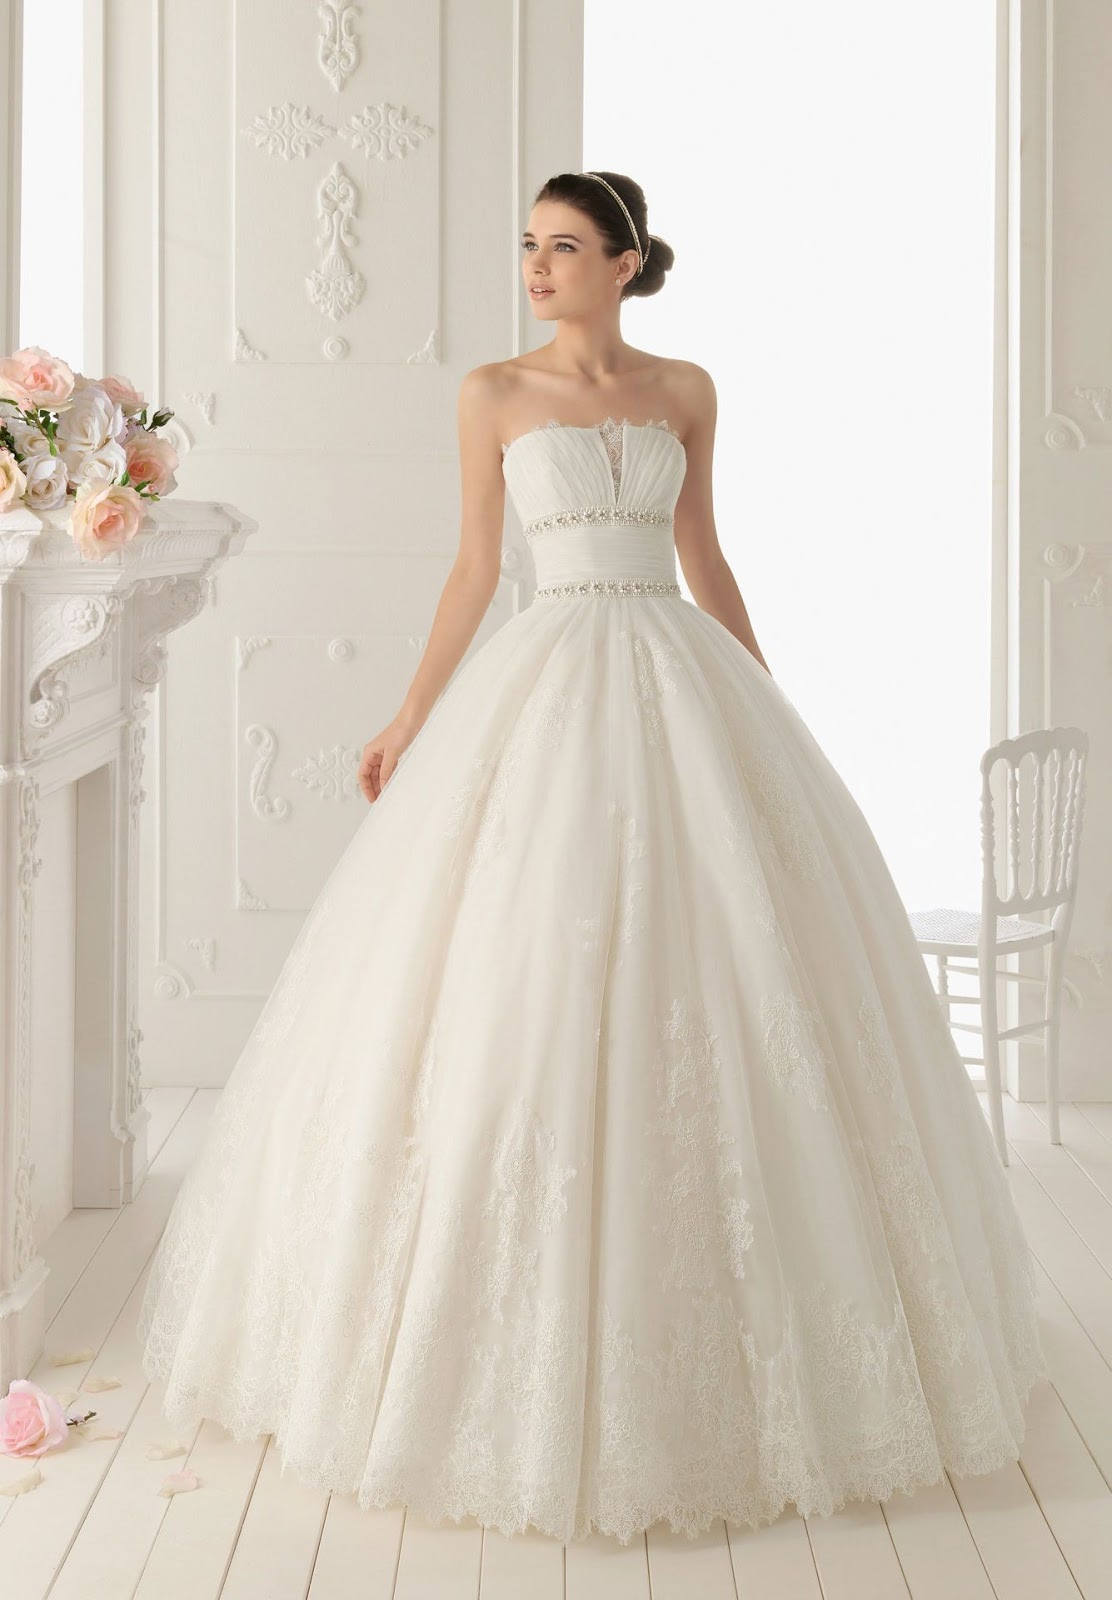 WhiteAzalea Ball Gowns Lace Ball Gown Wedding Dress Timeless and Elegant